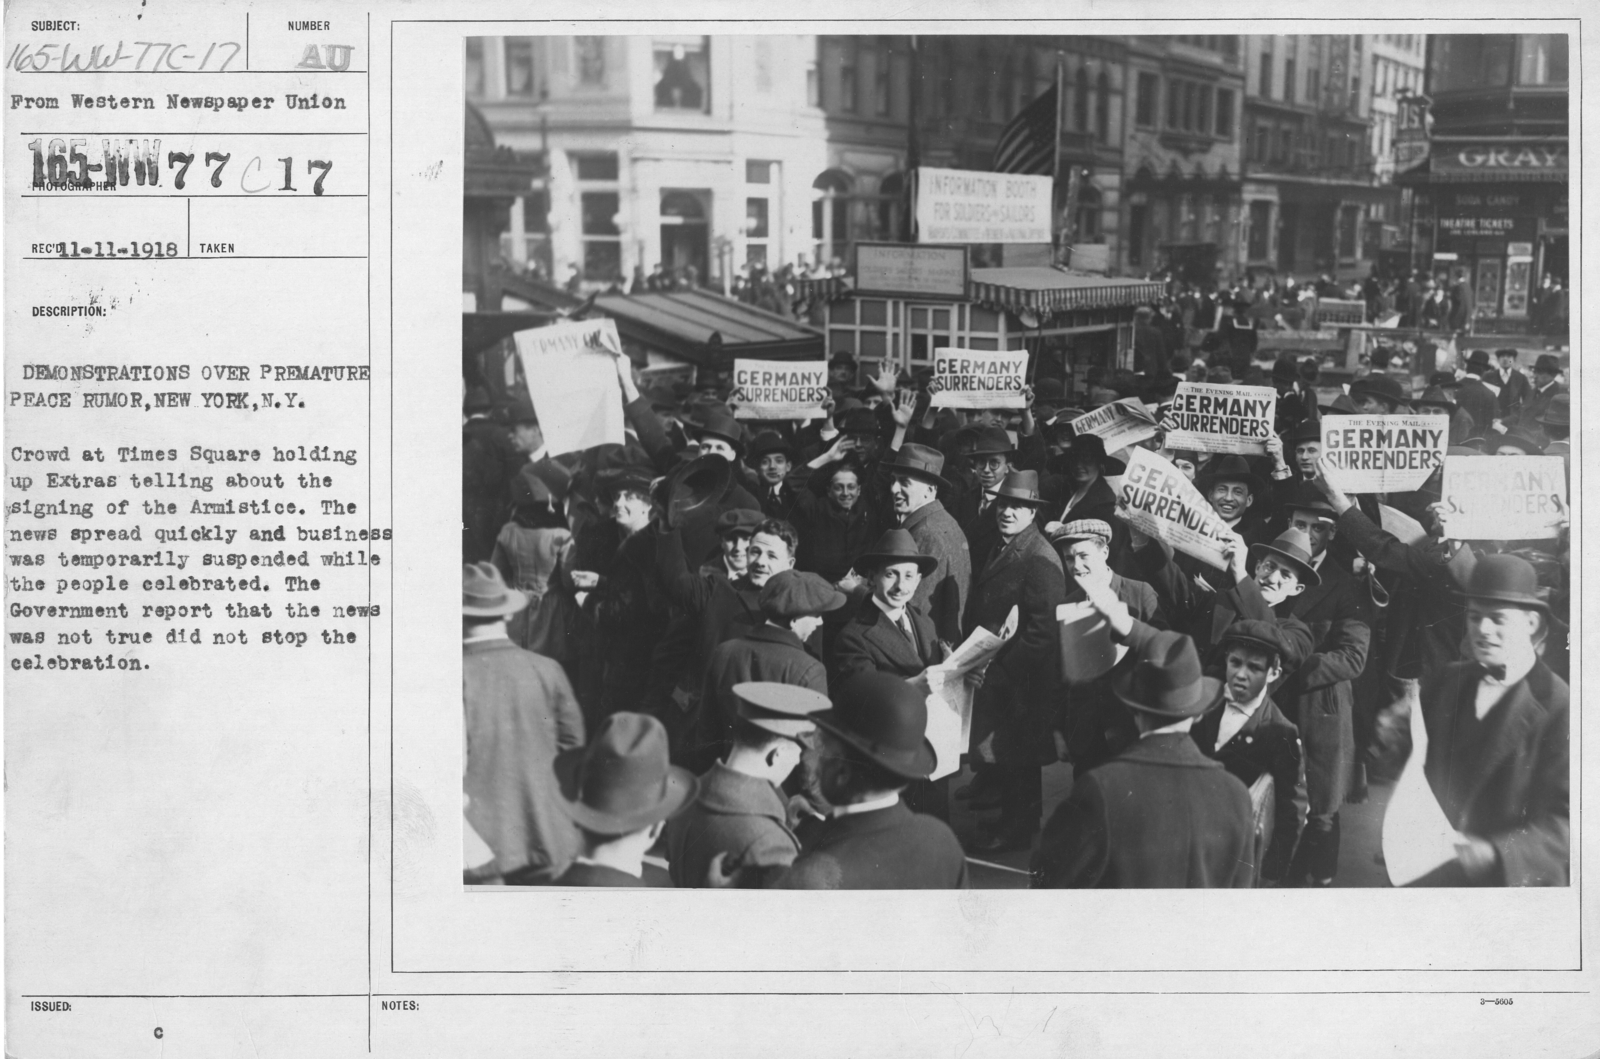 Ceremonies - New York City - Demonstrations over premature peace rumor, New York, N.Y. Crowd at Times Square holding up Extras telling about the signing of the Armistice. The news spread quickly and business was temporarily suspended while the people celebrated. The Government report that the news was not true did not stop the celebration